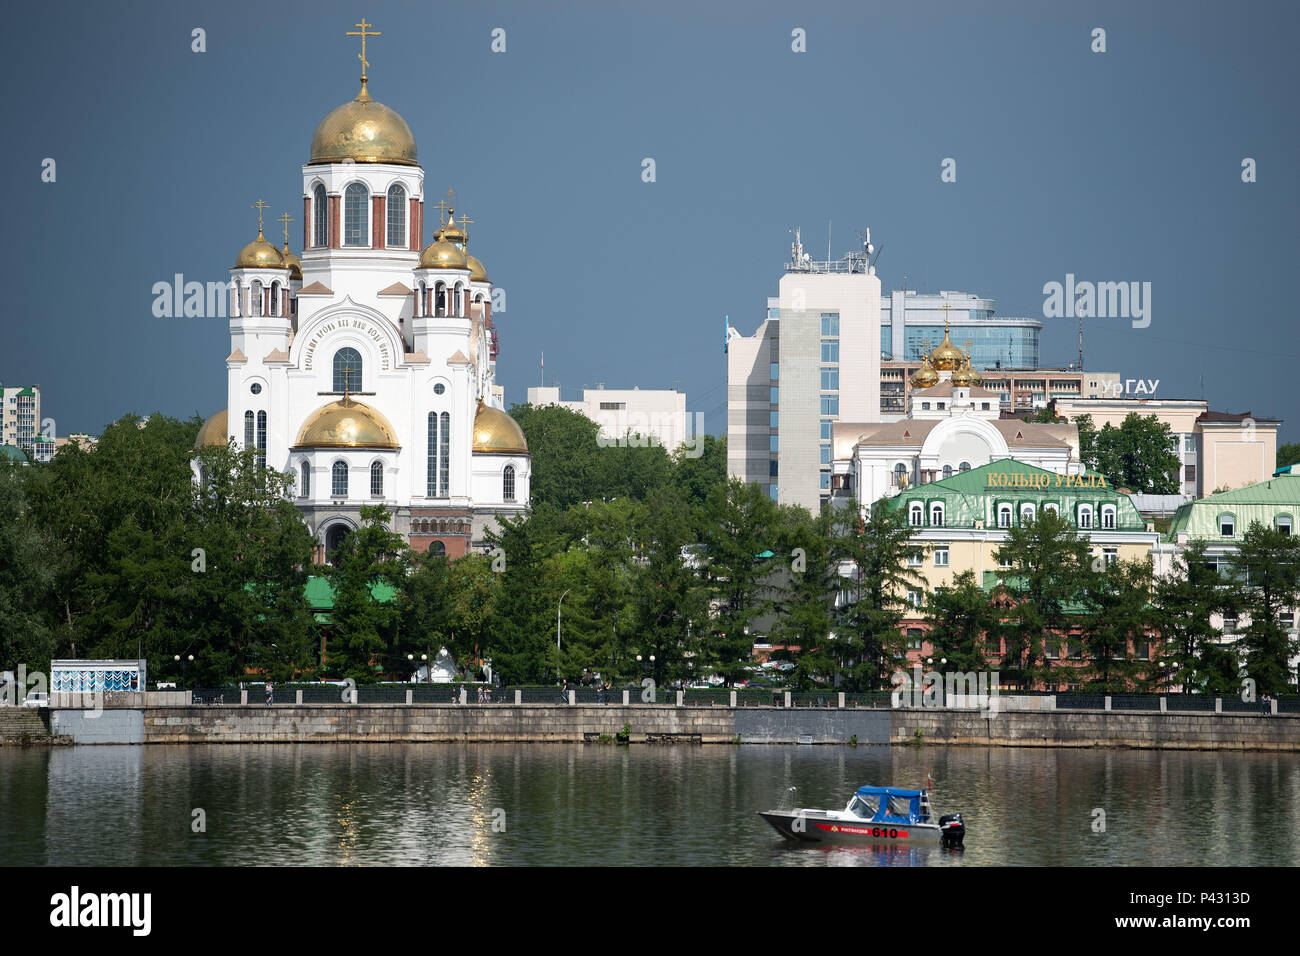 Yekaterinburg, Russia. 20th June, 2018. Soccer, World Cup 2018: The cathedral on the river 'Blut'. Credit: Marius Becker/dpa/Alamy Live News - Stock Image